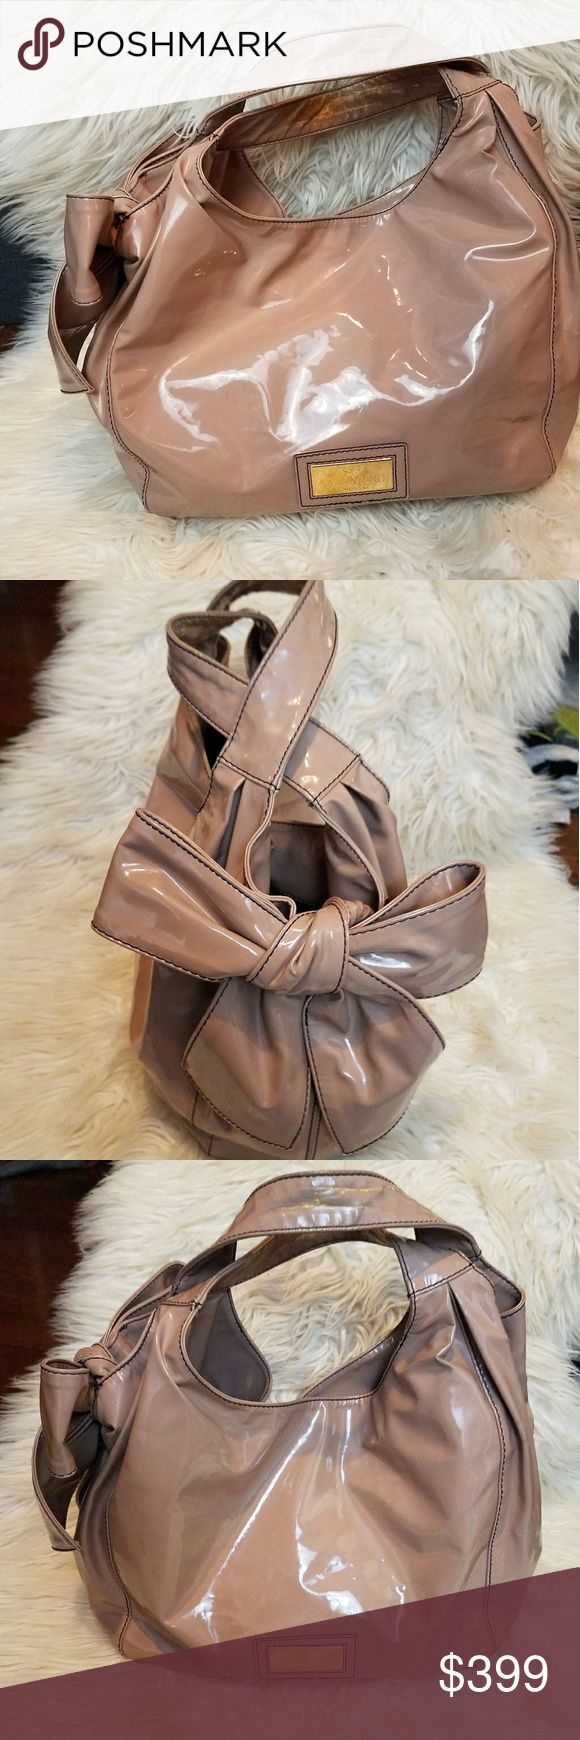 VALENTINO Nuage Bow Patent Leather Hobo VALENTINO 100% Authentic Nuage Bow Patent Leather Hobo in nude / blush. Medium size, will update with measurements! Only wear is a tiny dot on the back and wear on the handles. Valentino Bags Hobos